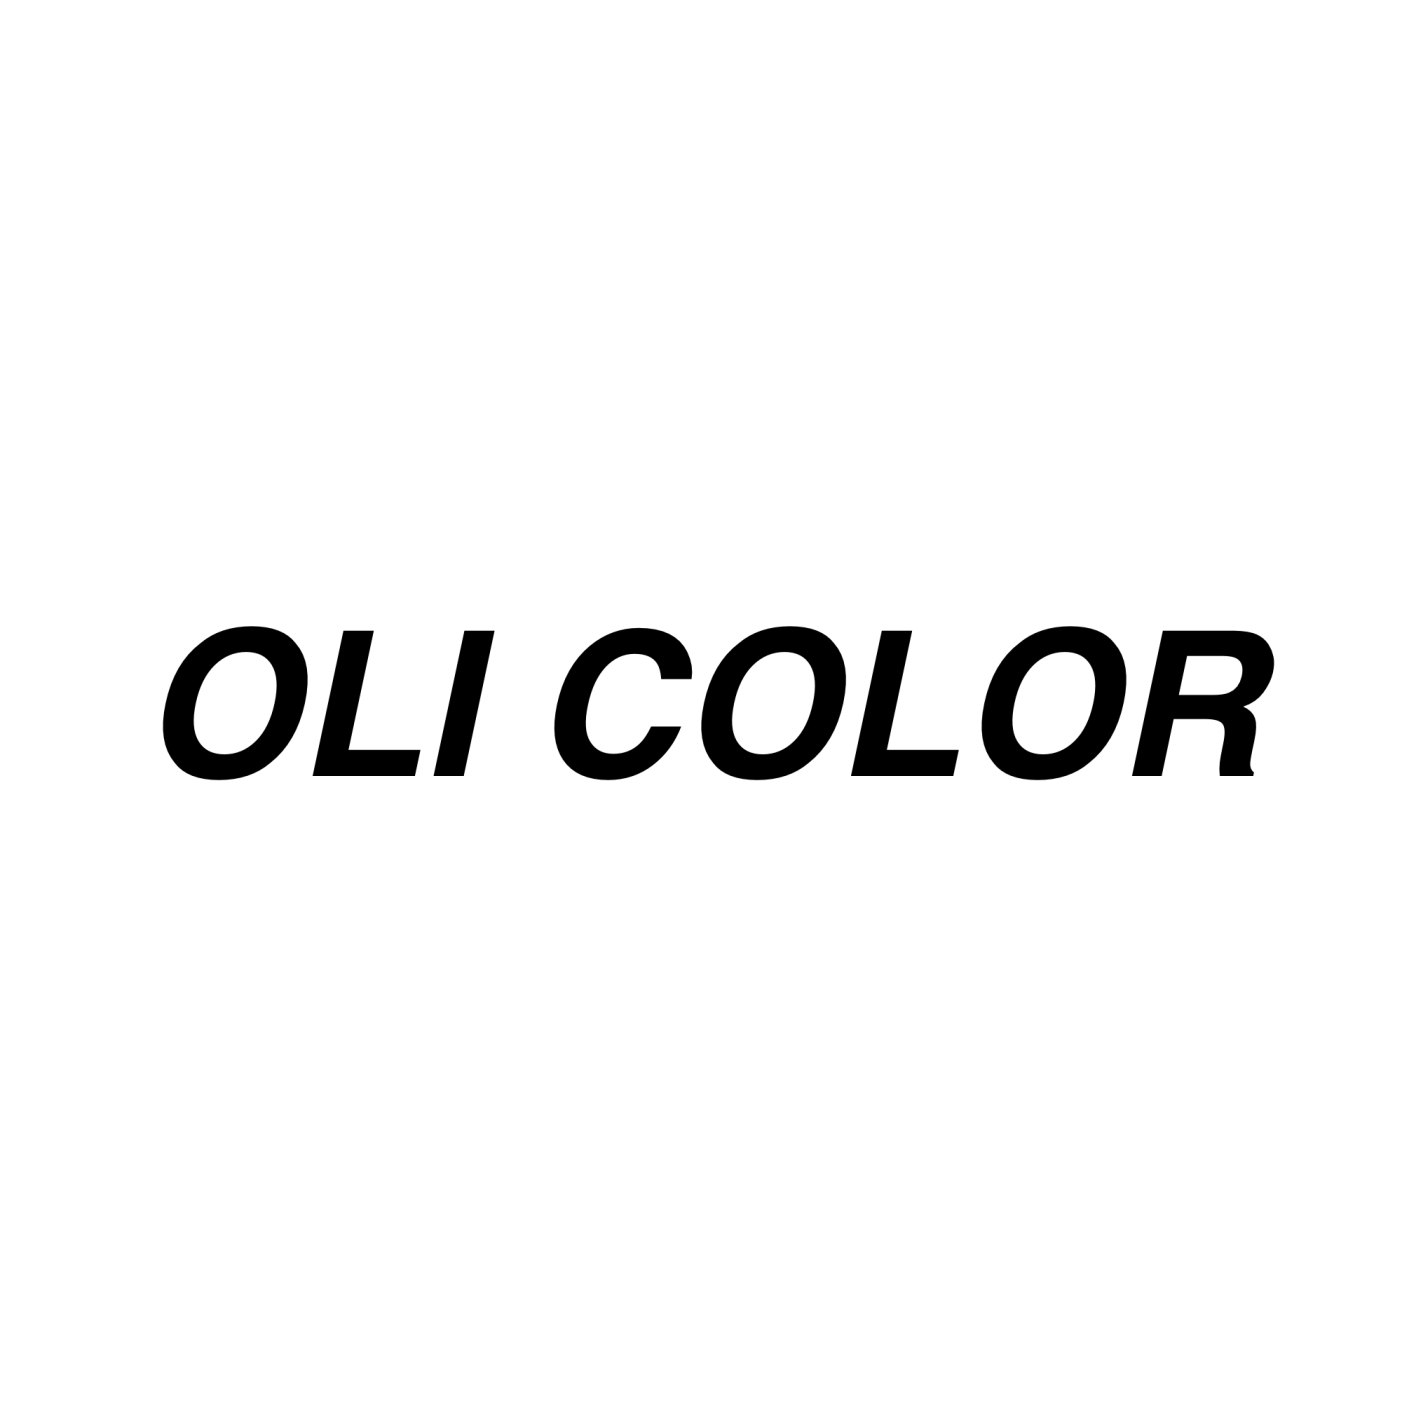 olicolor